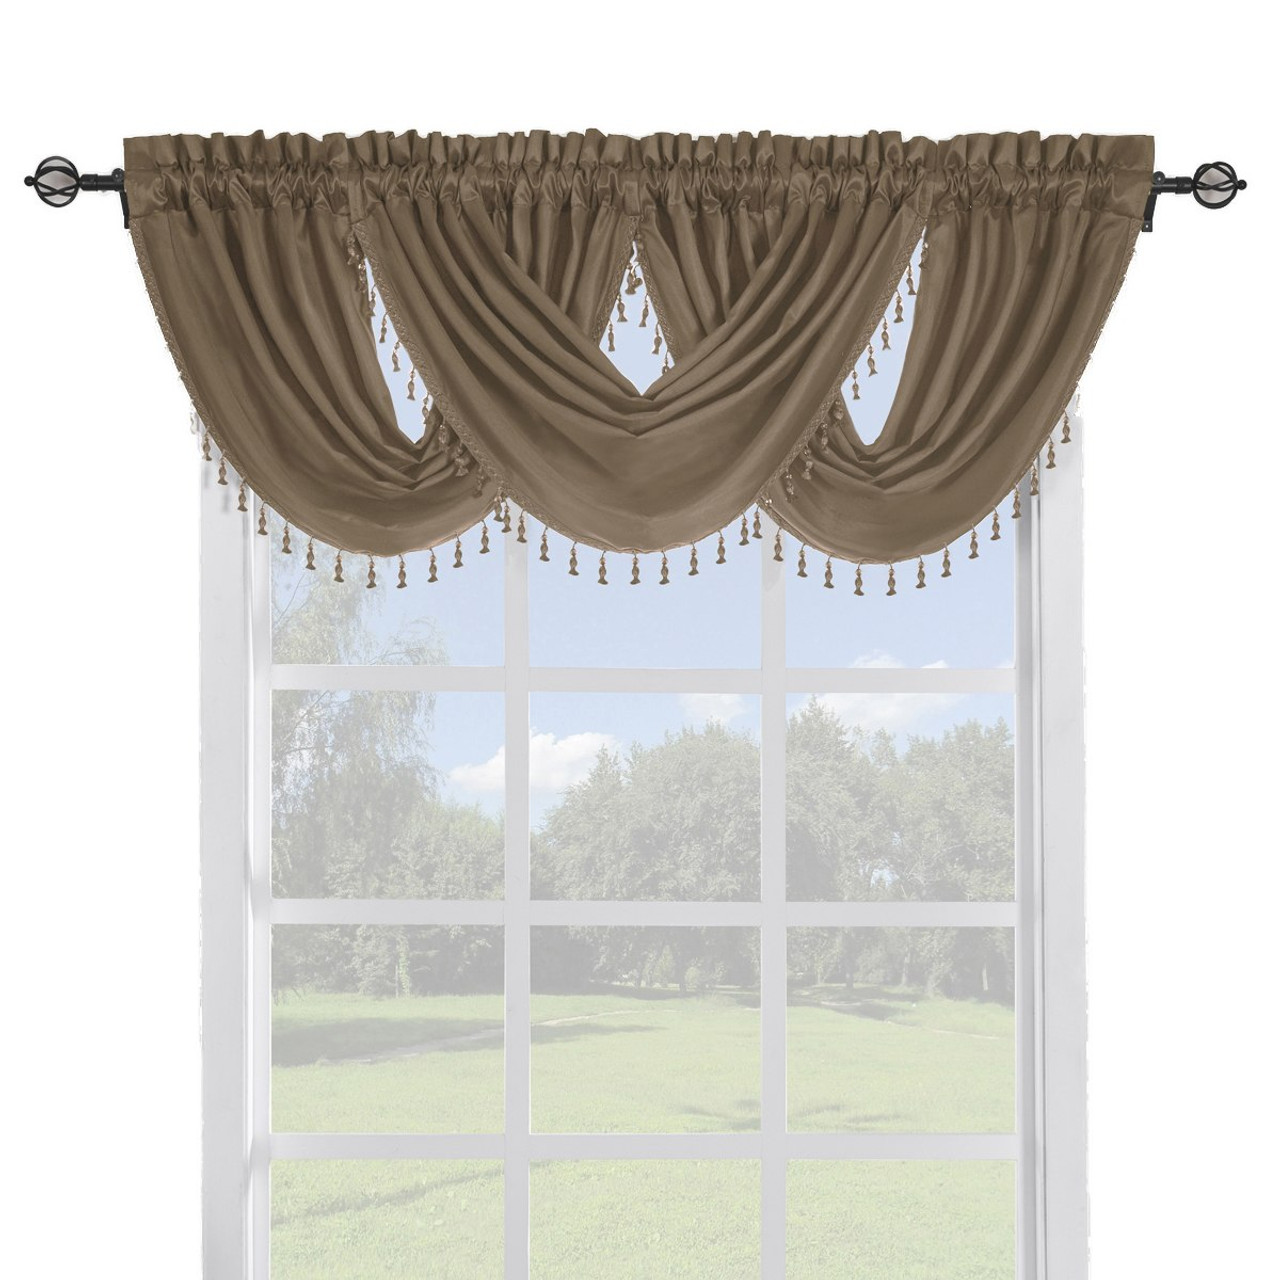 sheer linen valance pack single treatments border fringe tassel lisa valances waterfall window main store pocket top x rod